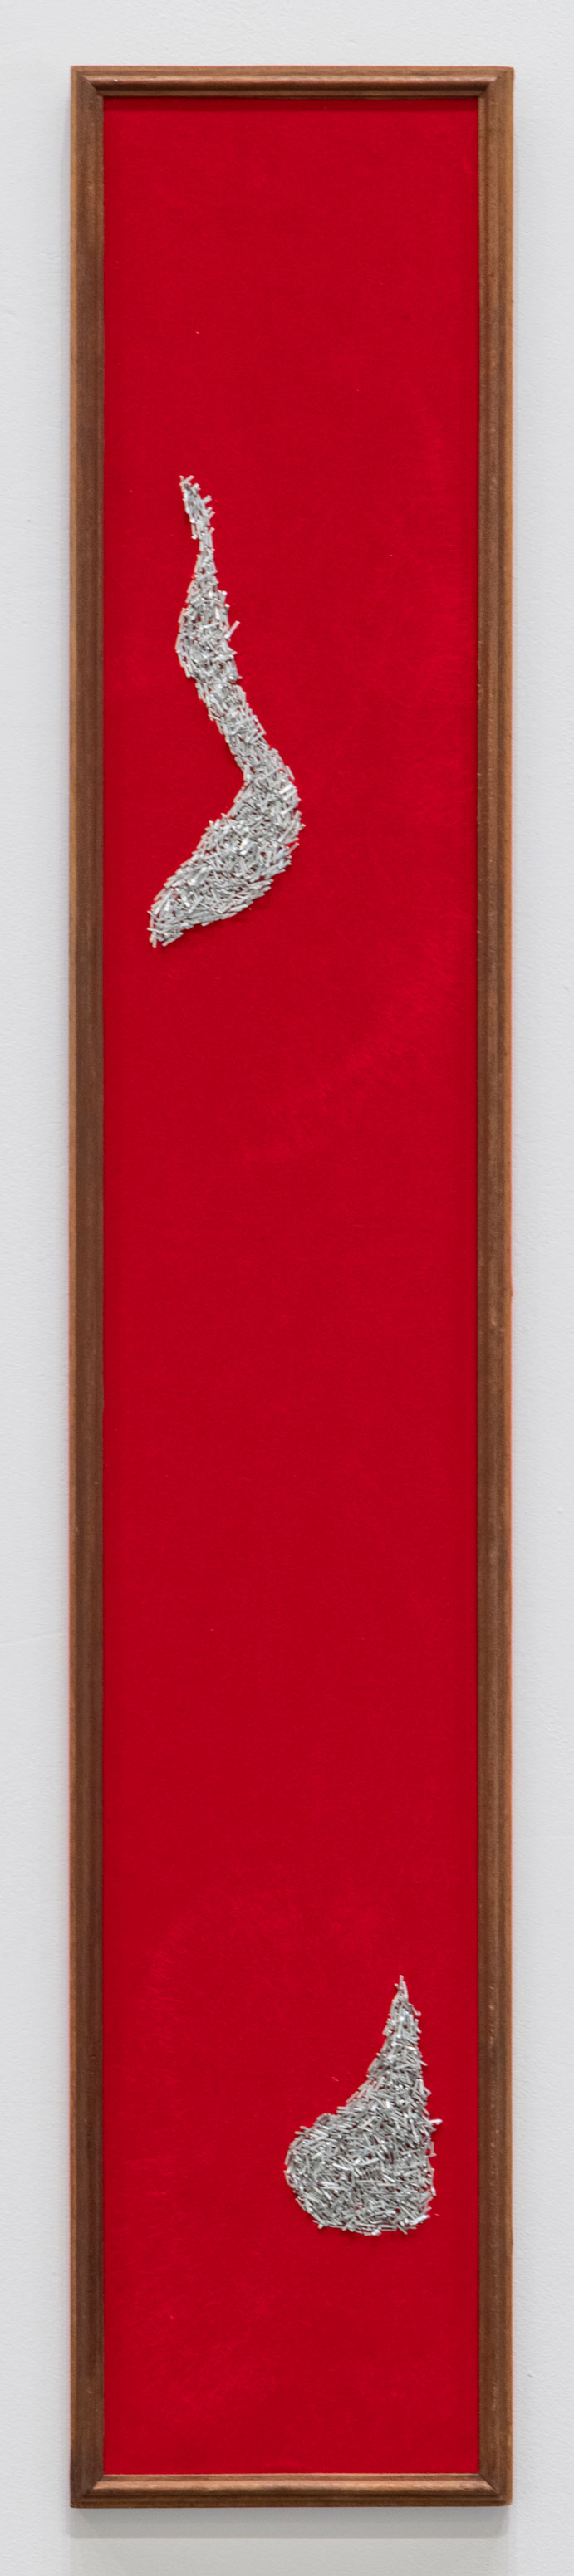 Vertical red panel with foil shapes at the top and bottom